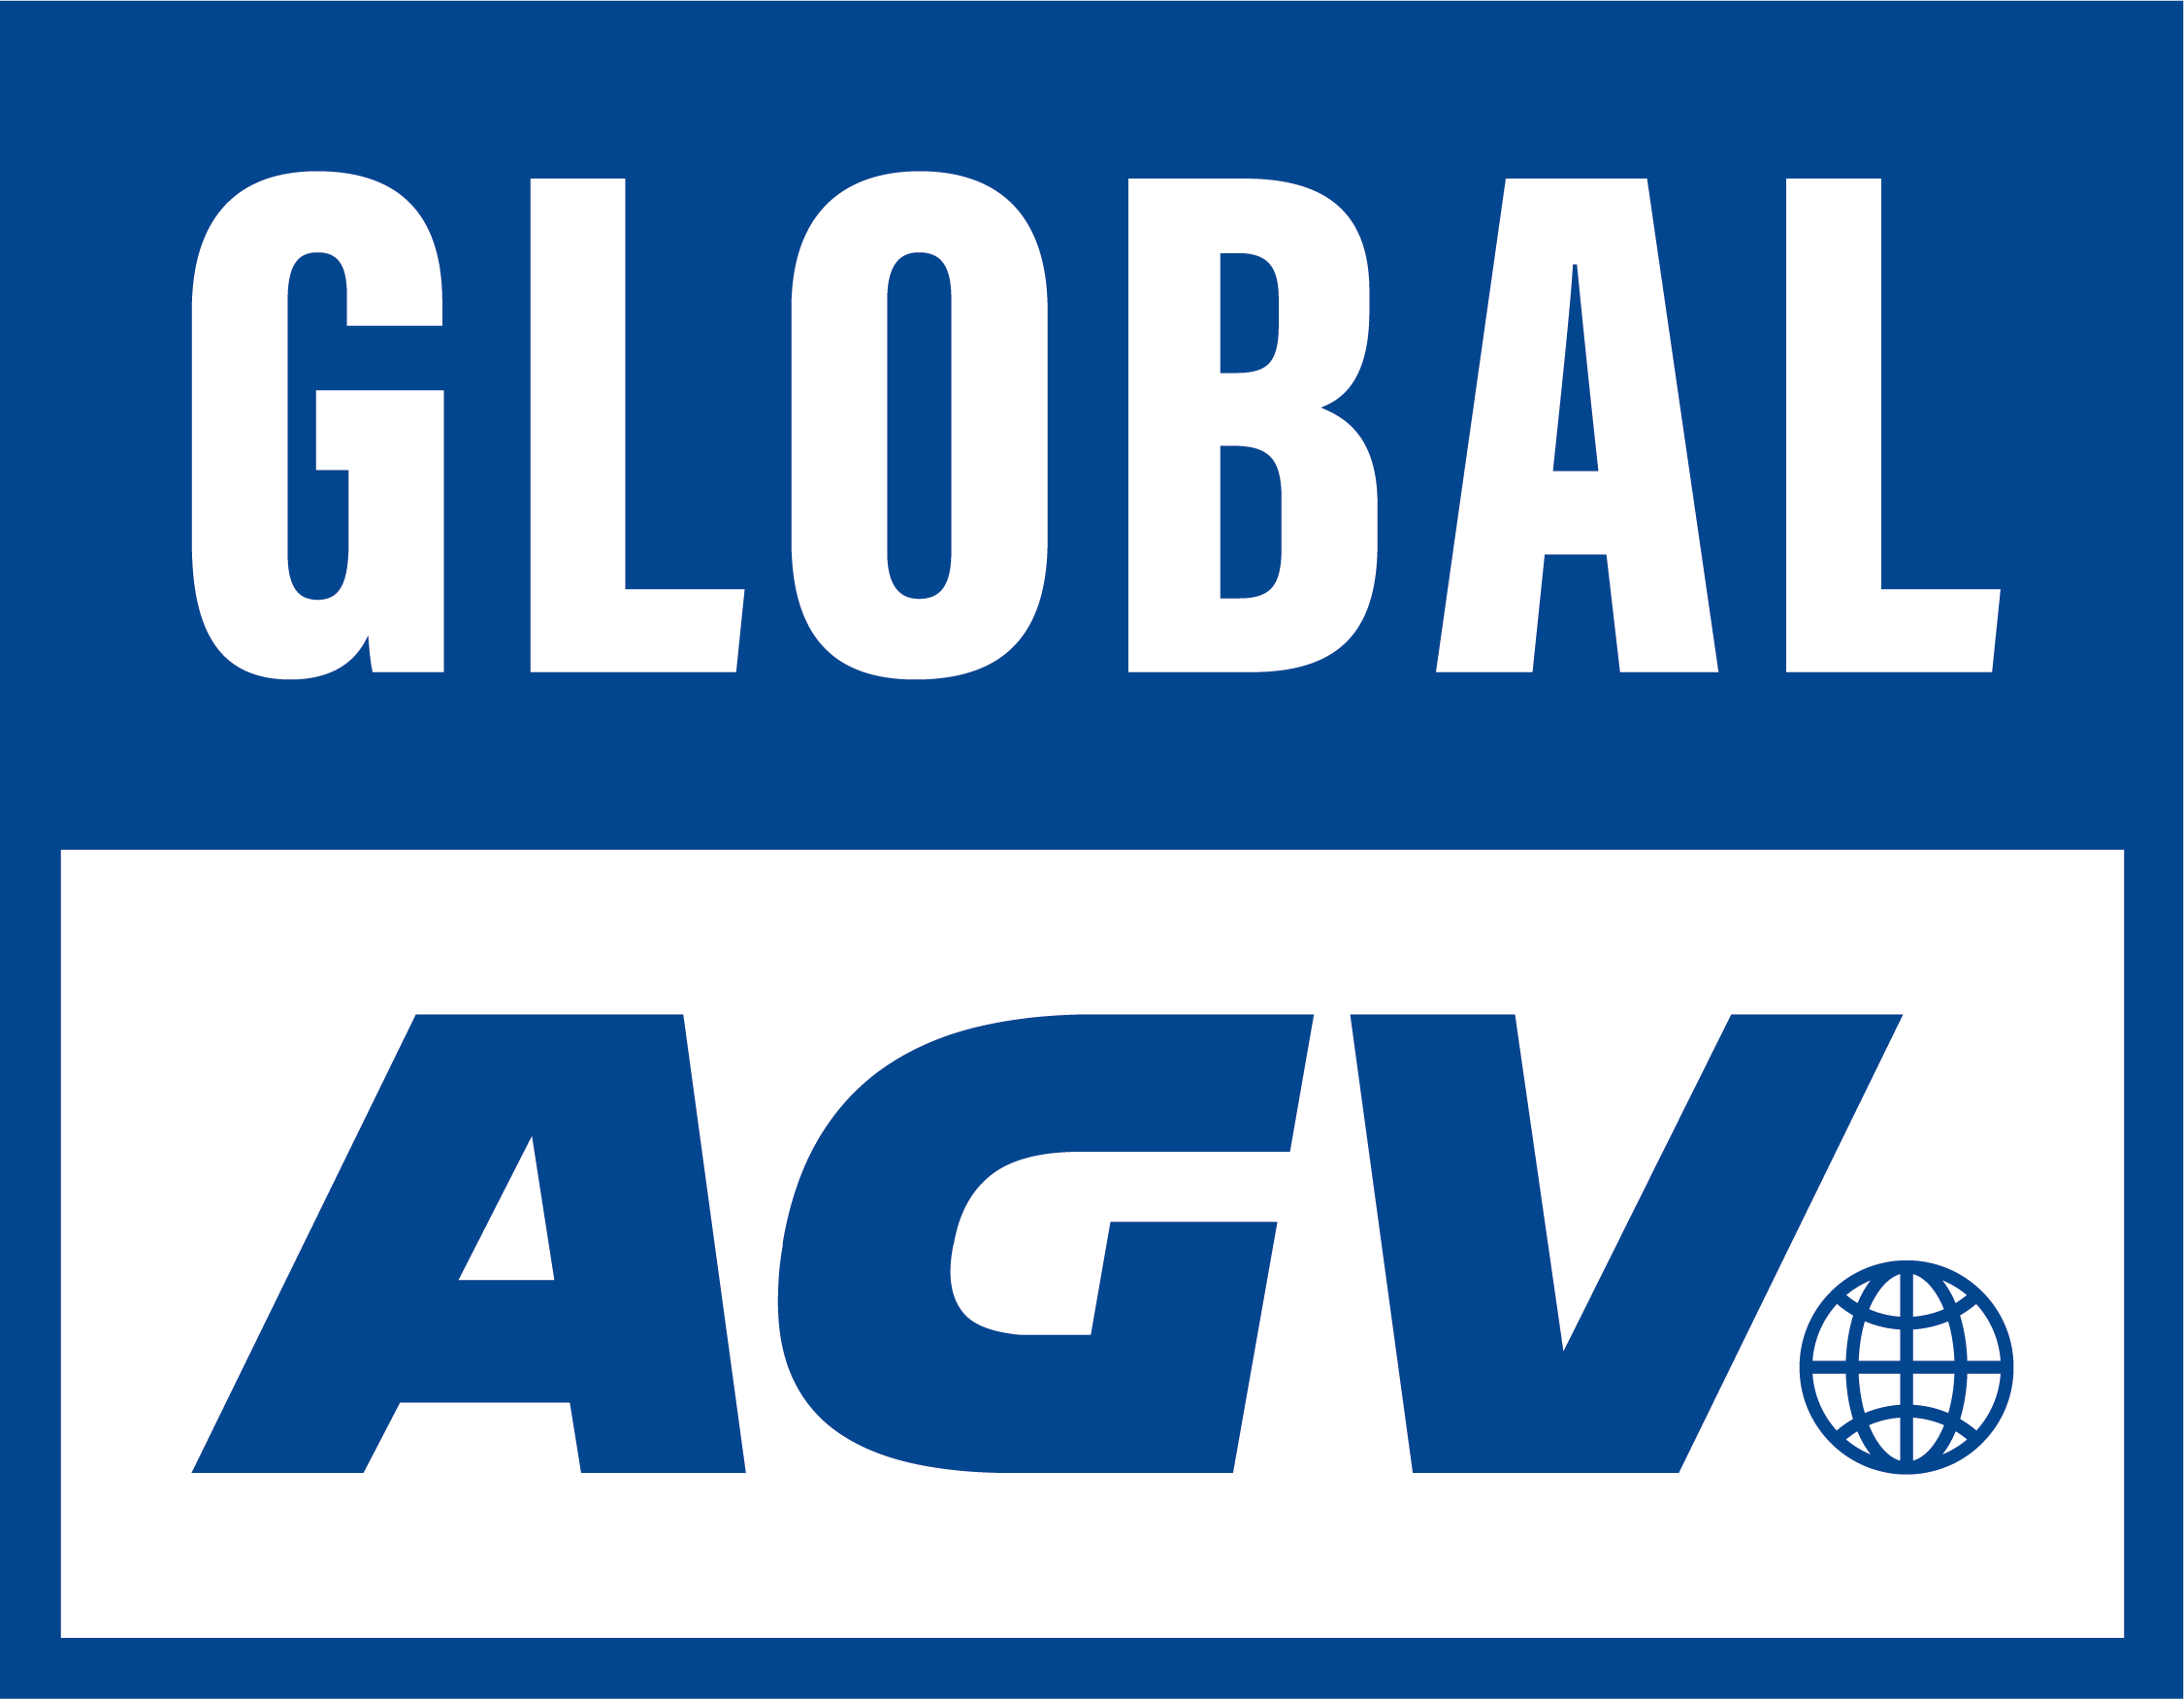 Enterprise Technology Starts with One Autonomous Forklift According to Global AGV